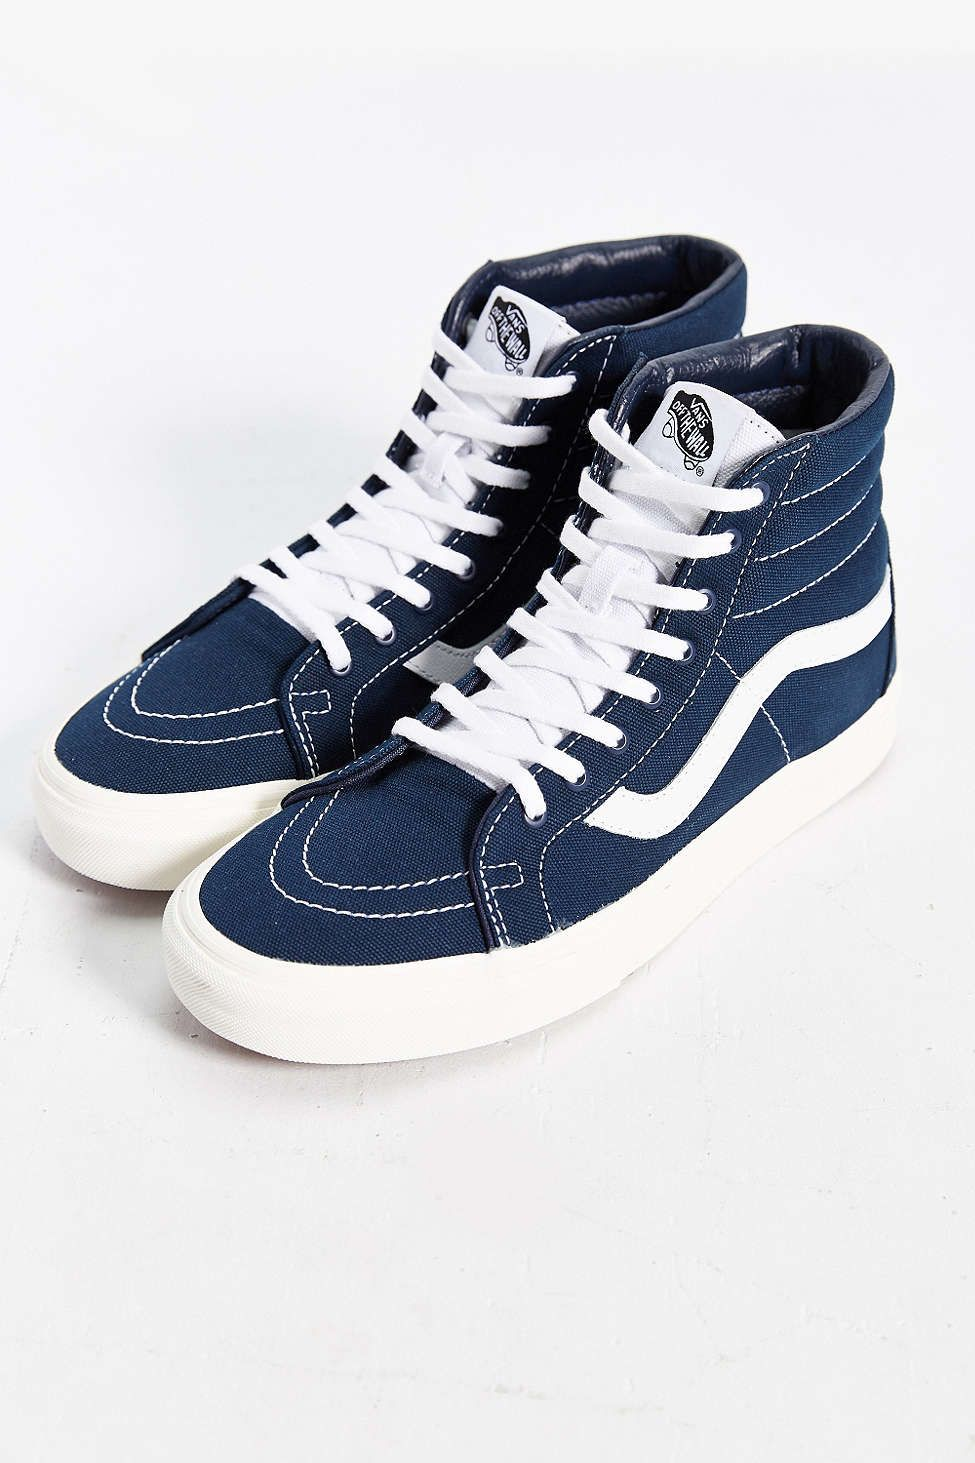 931bf8308c242c Vans Sk8 High-Top Reissue Canvas Men s Sneaker